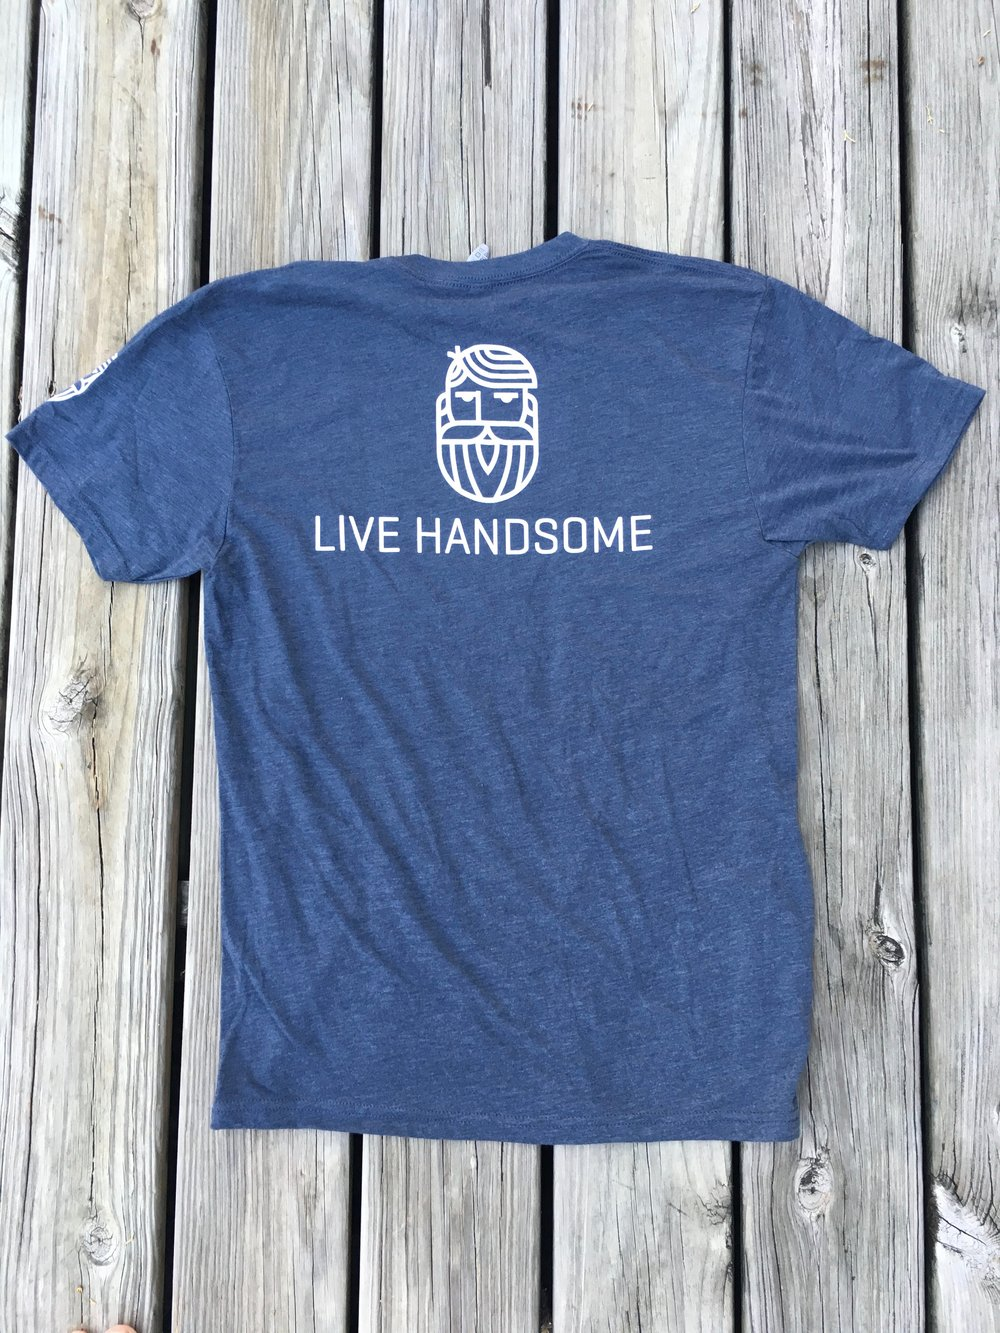 Men's Live Handsome shirt